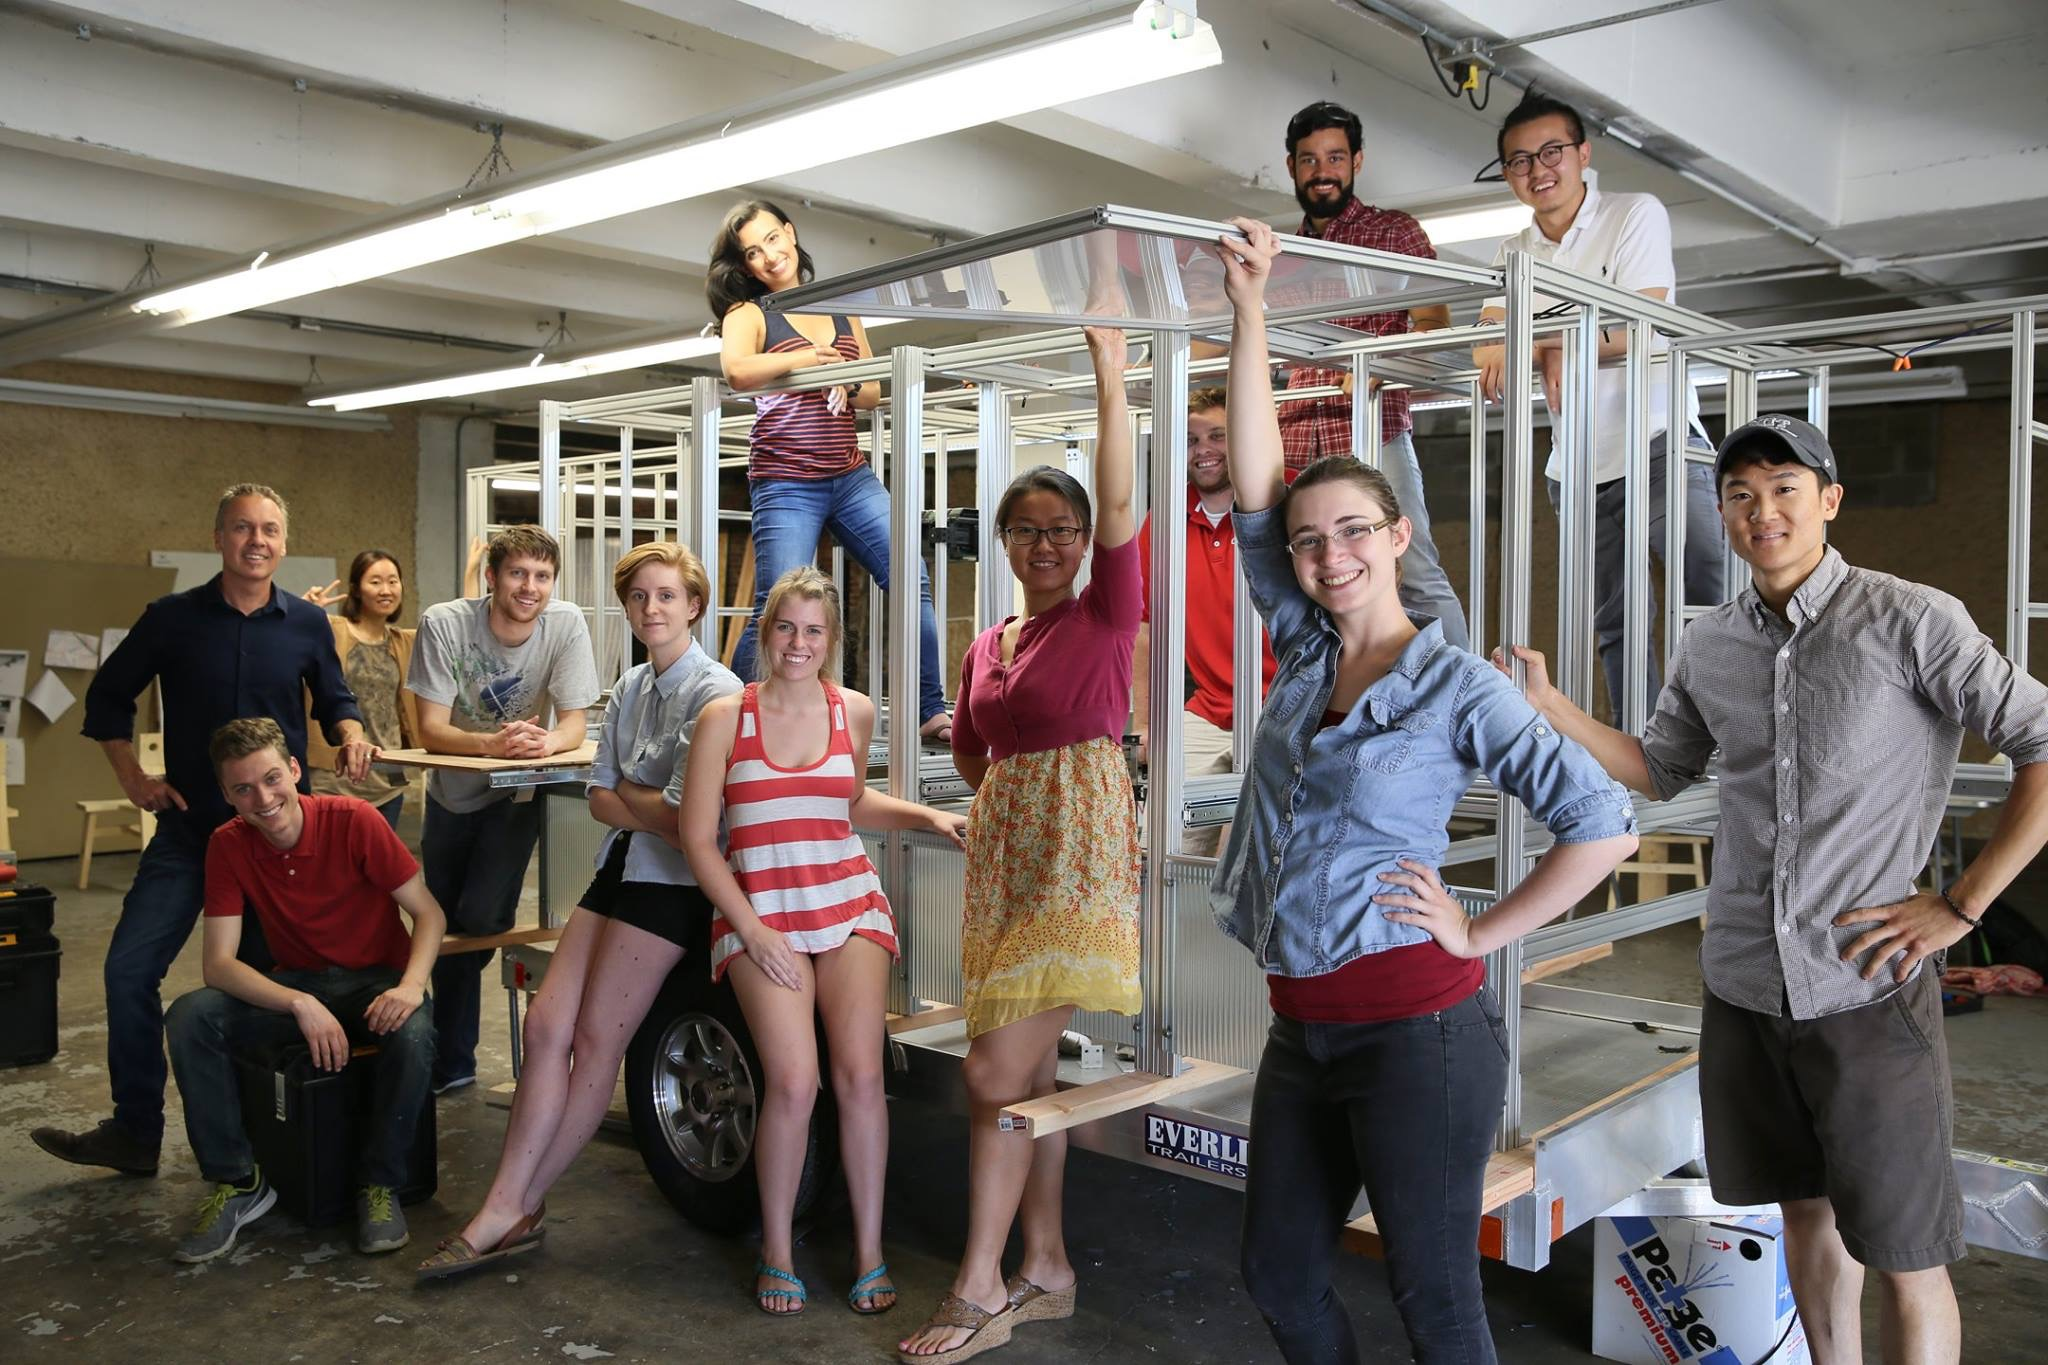 MetroLAB Mobile Workshop Studio,